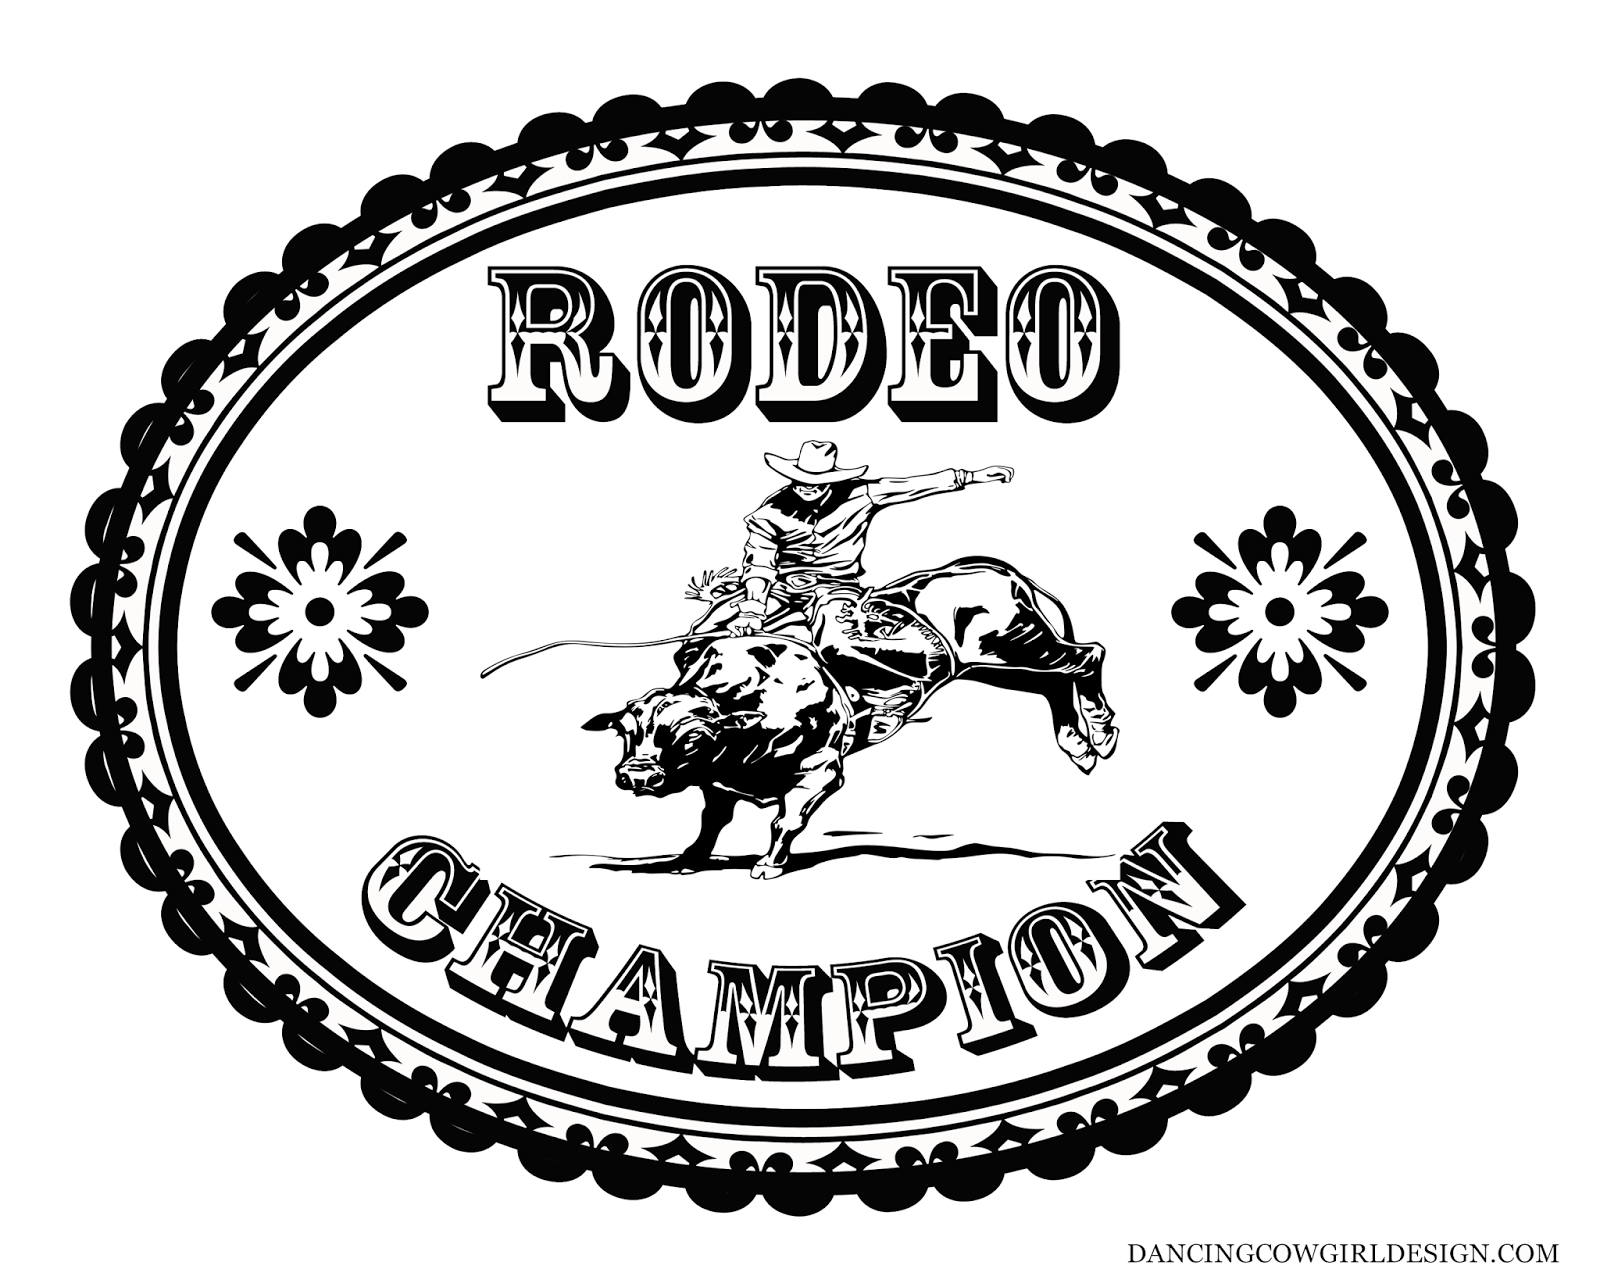 RODEO COLORING PAGES: Coloring Sheet Cowboy Rodeo Bull Rider Belt ...